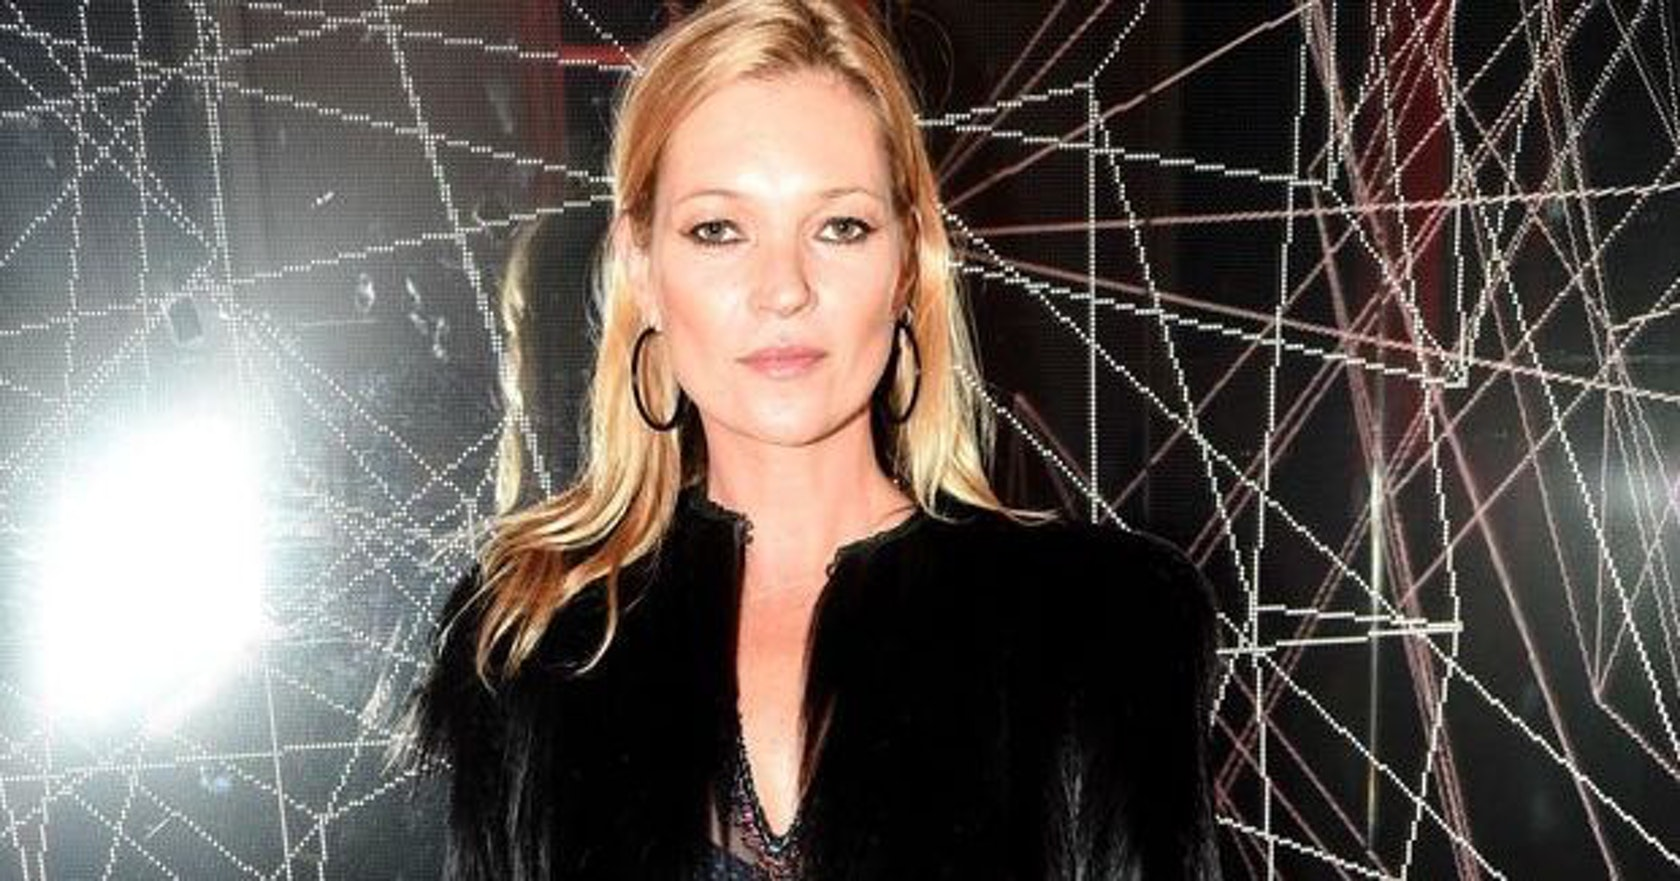 Ice facials, plenty of lippy and a great tan; Kate Moss shares her beauty secrets for party season